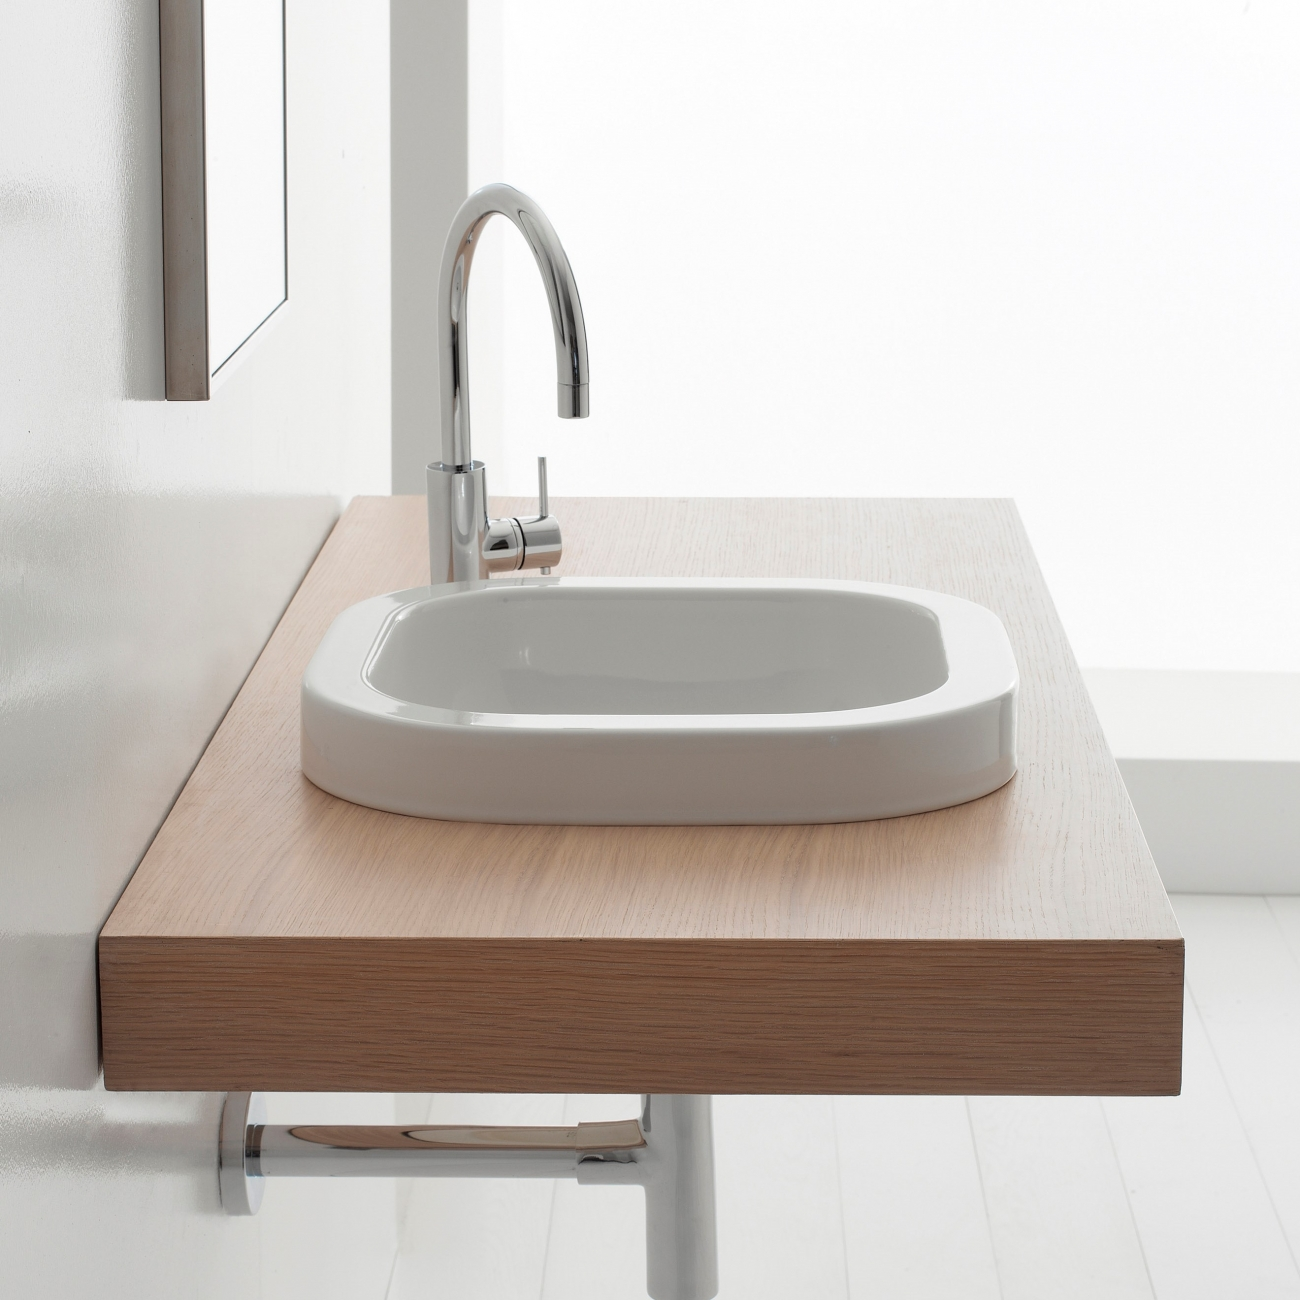 NEXT SCARABEO 40A Built-in washbasin